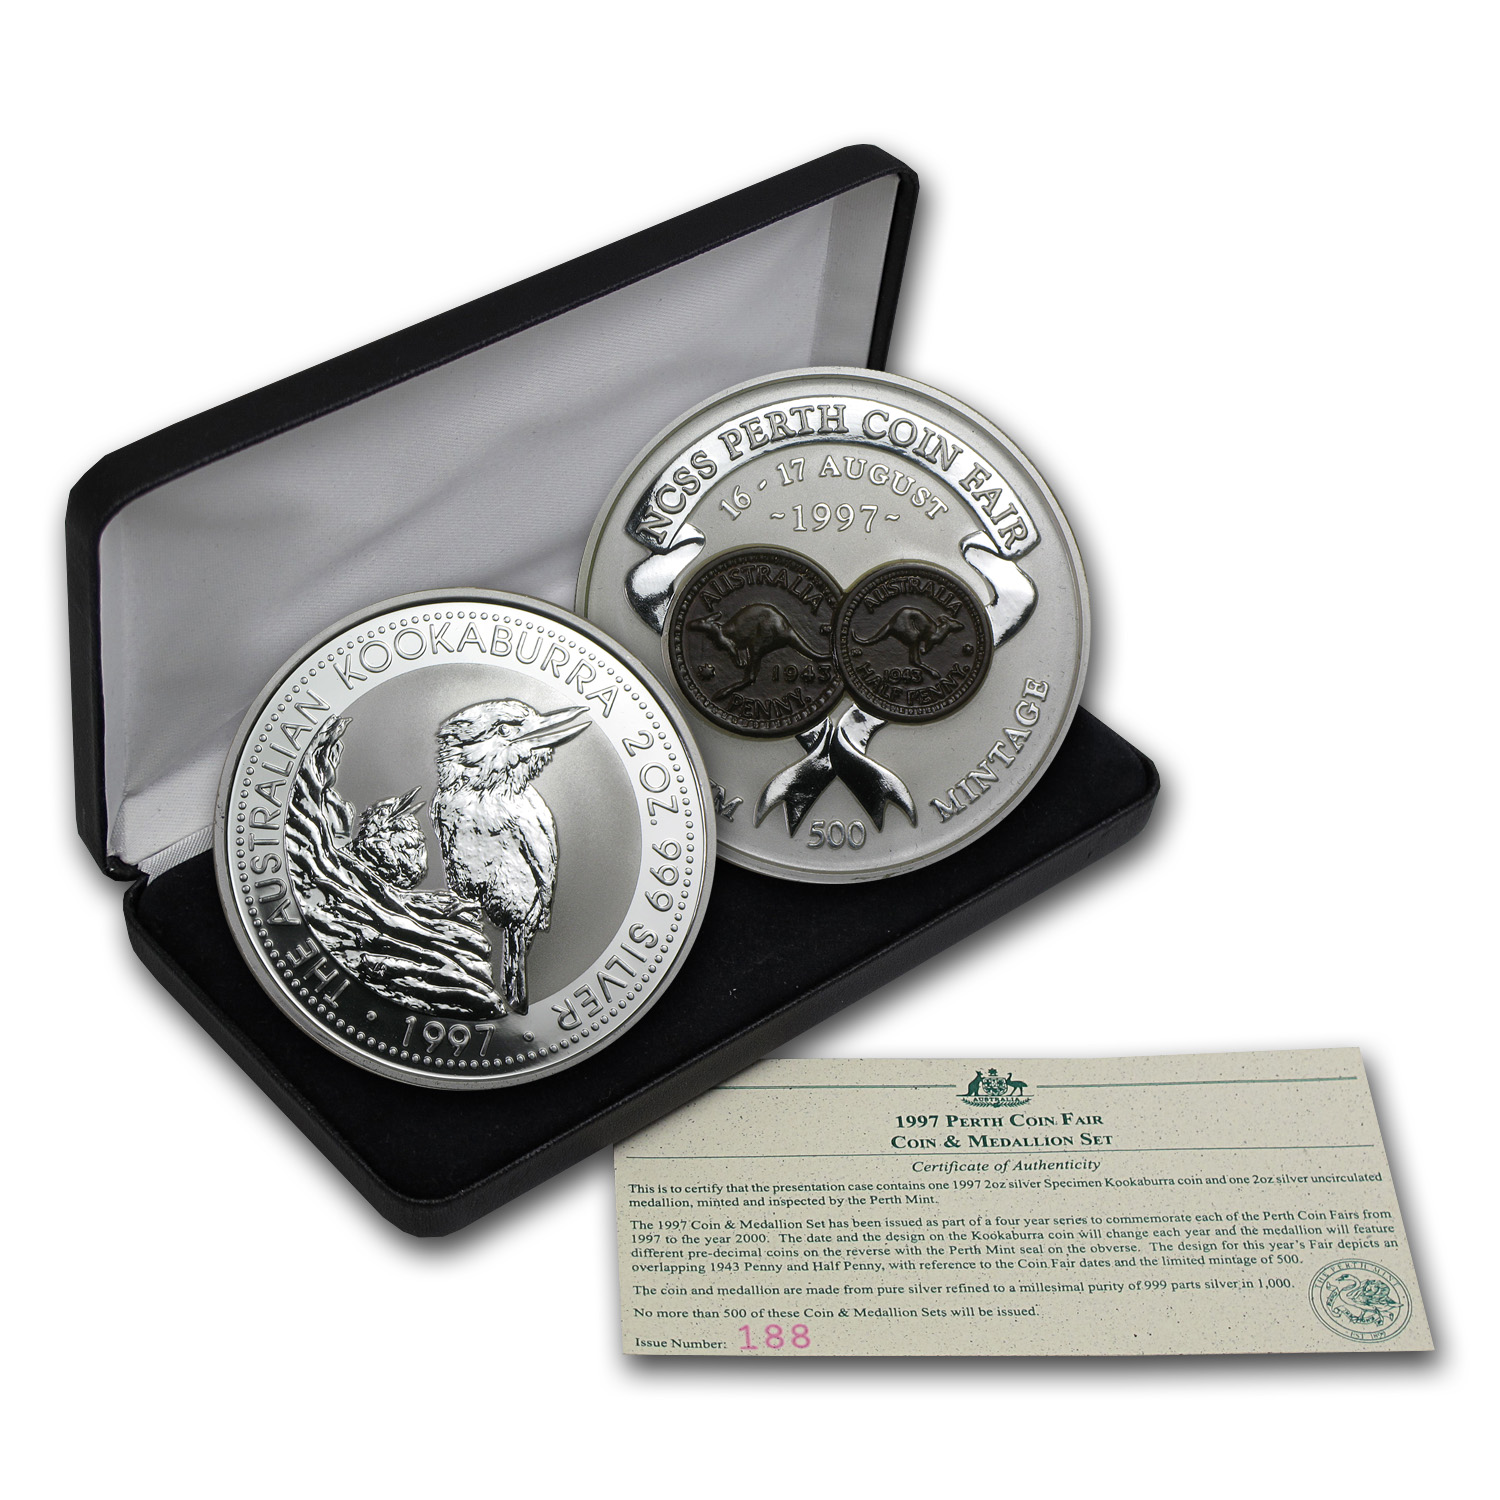 1997 2-Piece 2 oz Silver Kookaburra & Coin Fair Medallion Set BU